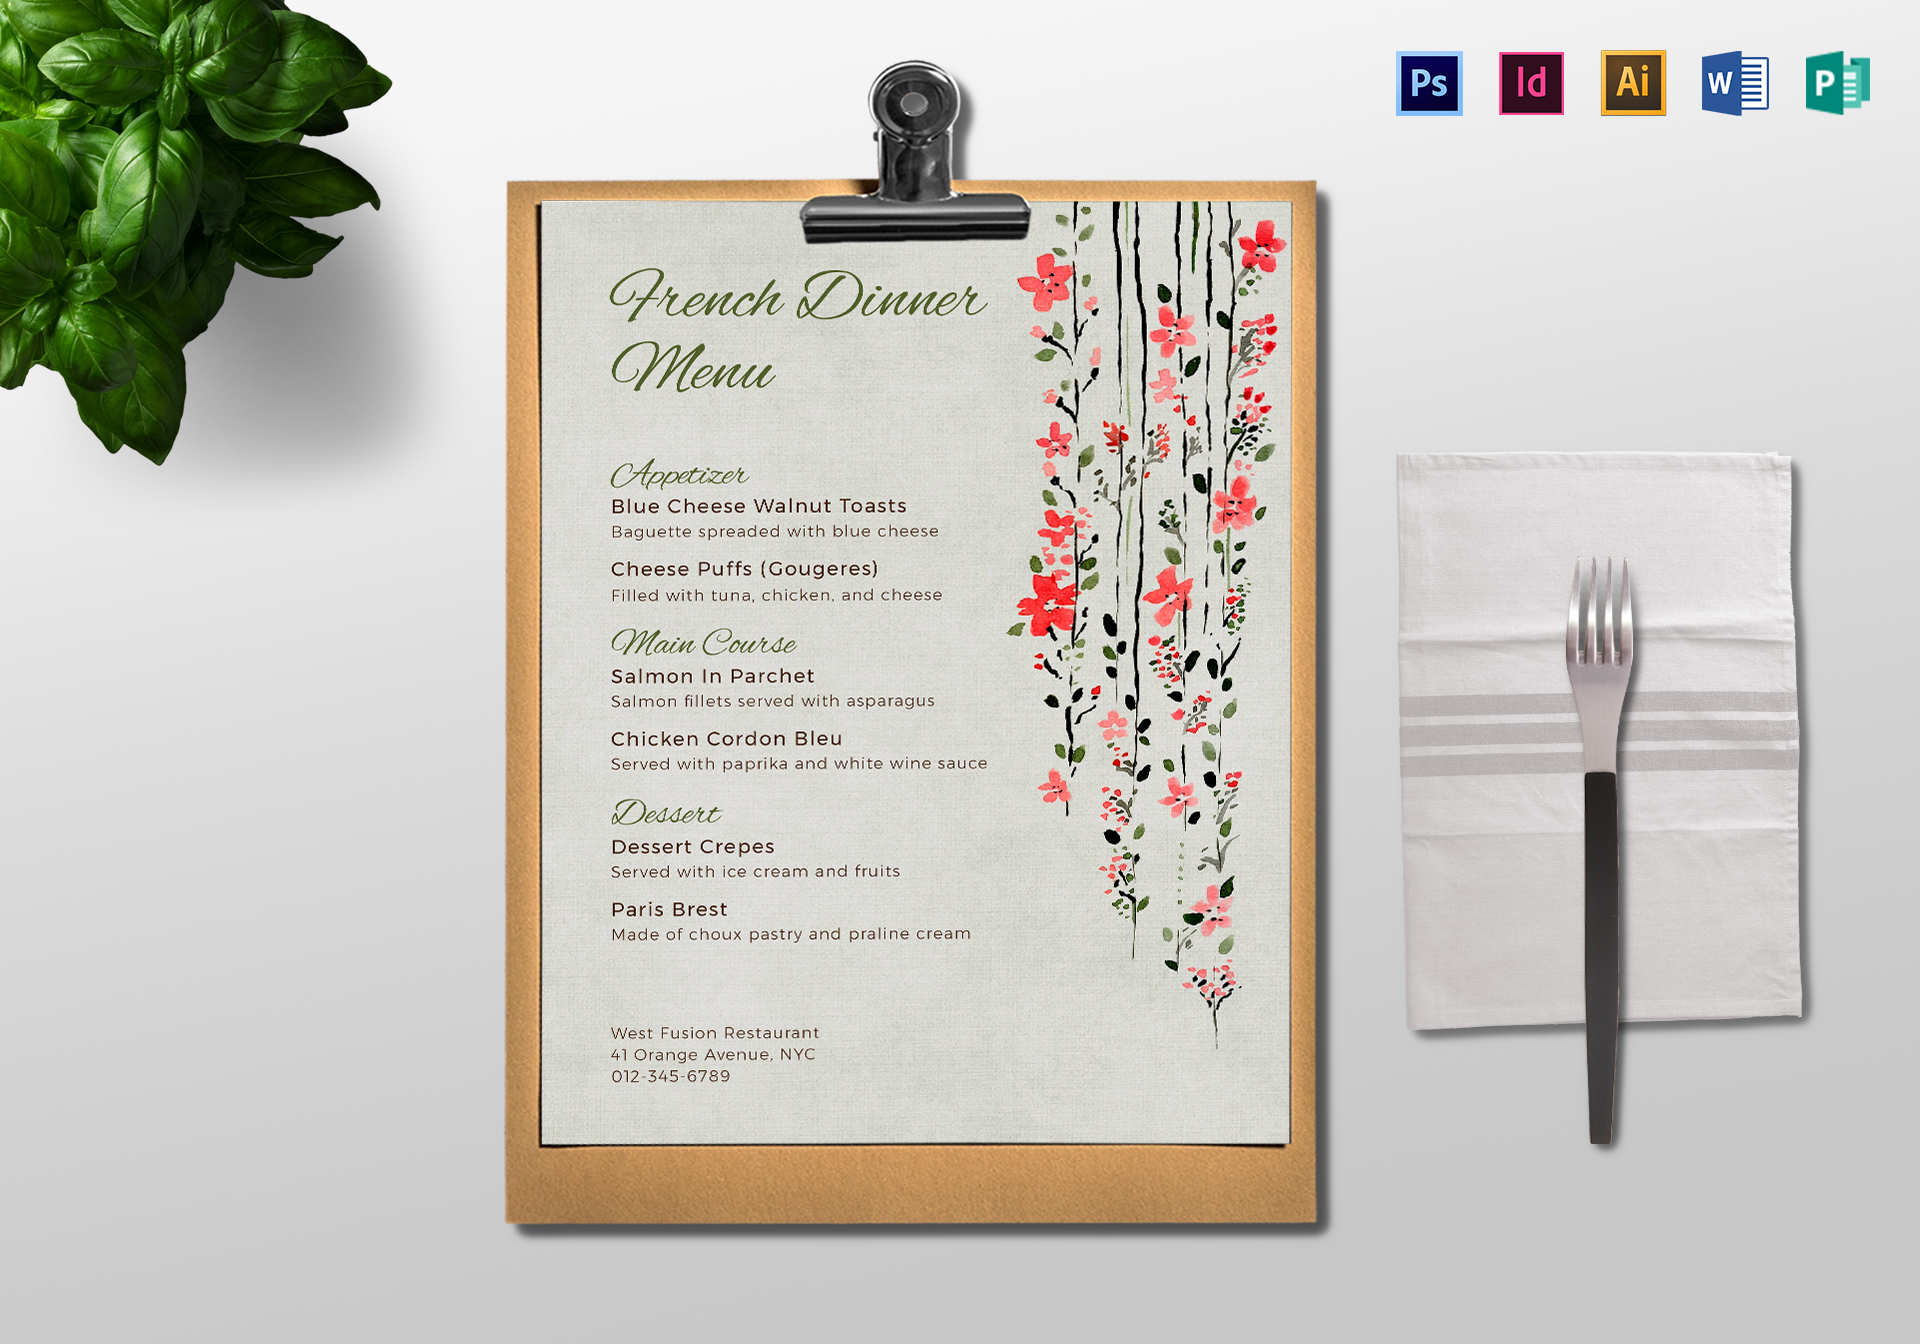 dinner menu design template in psd  word  publisher